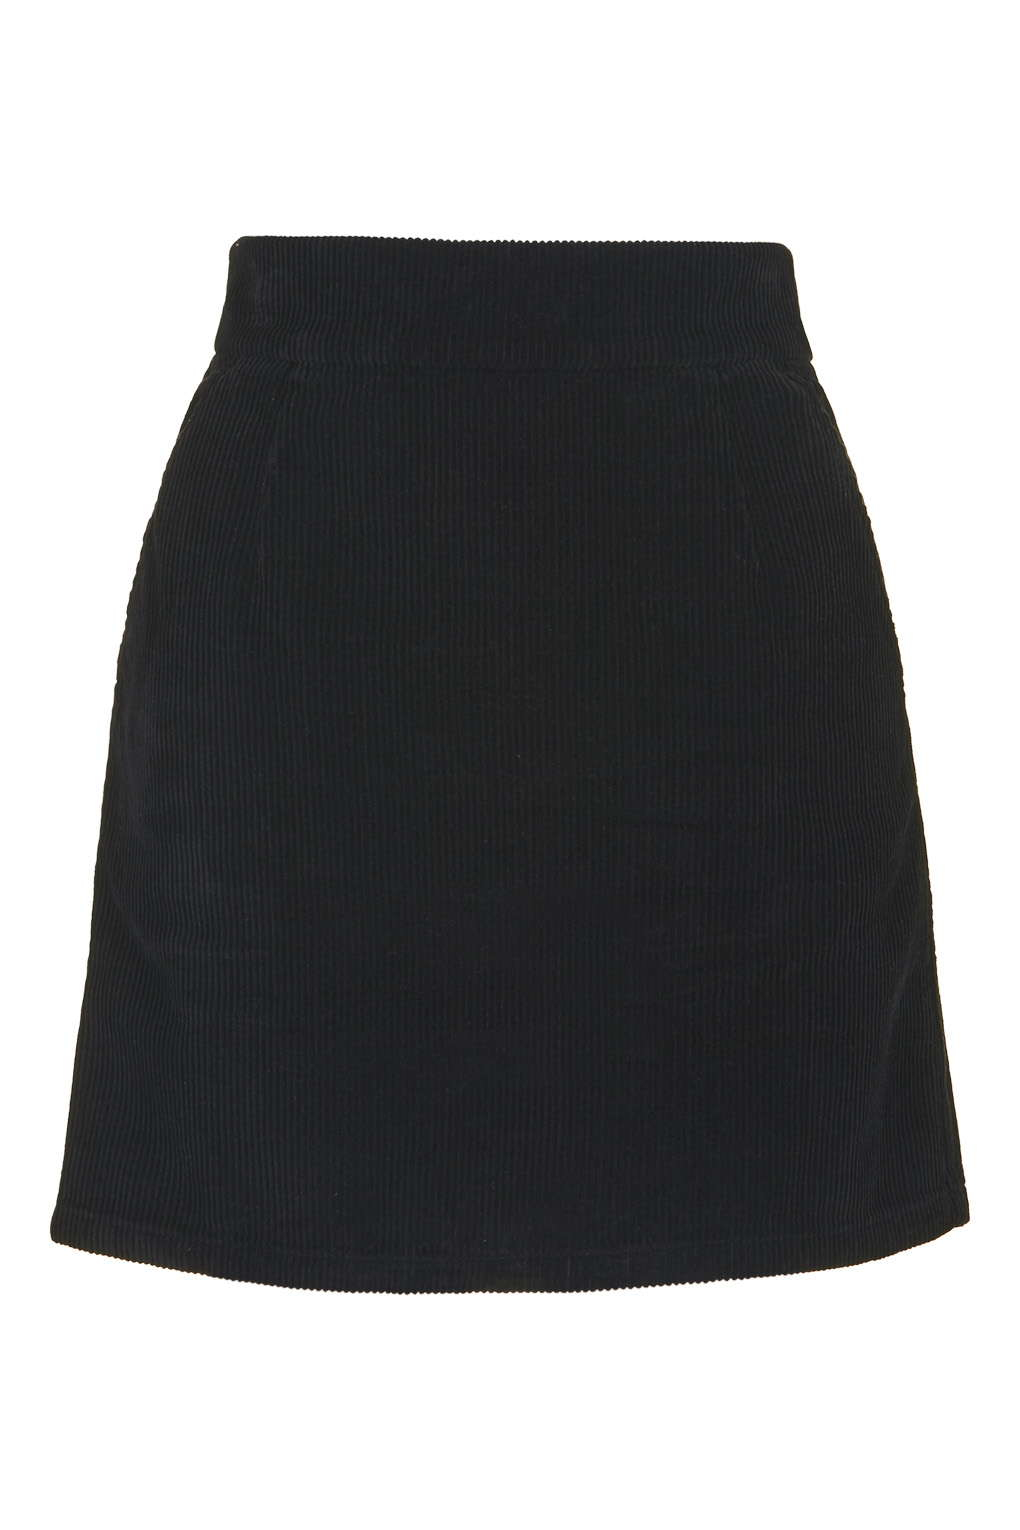 topshop moto cord a line skirt in black lyst